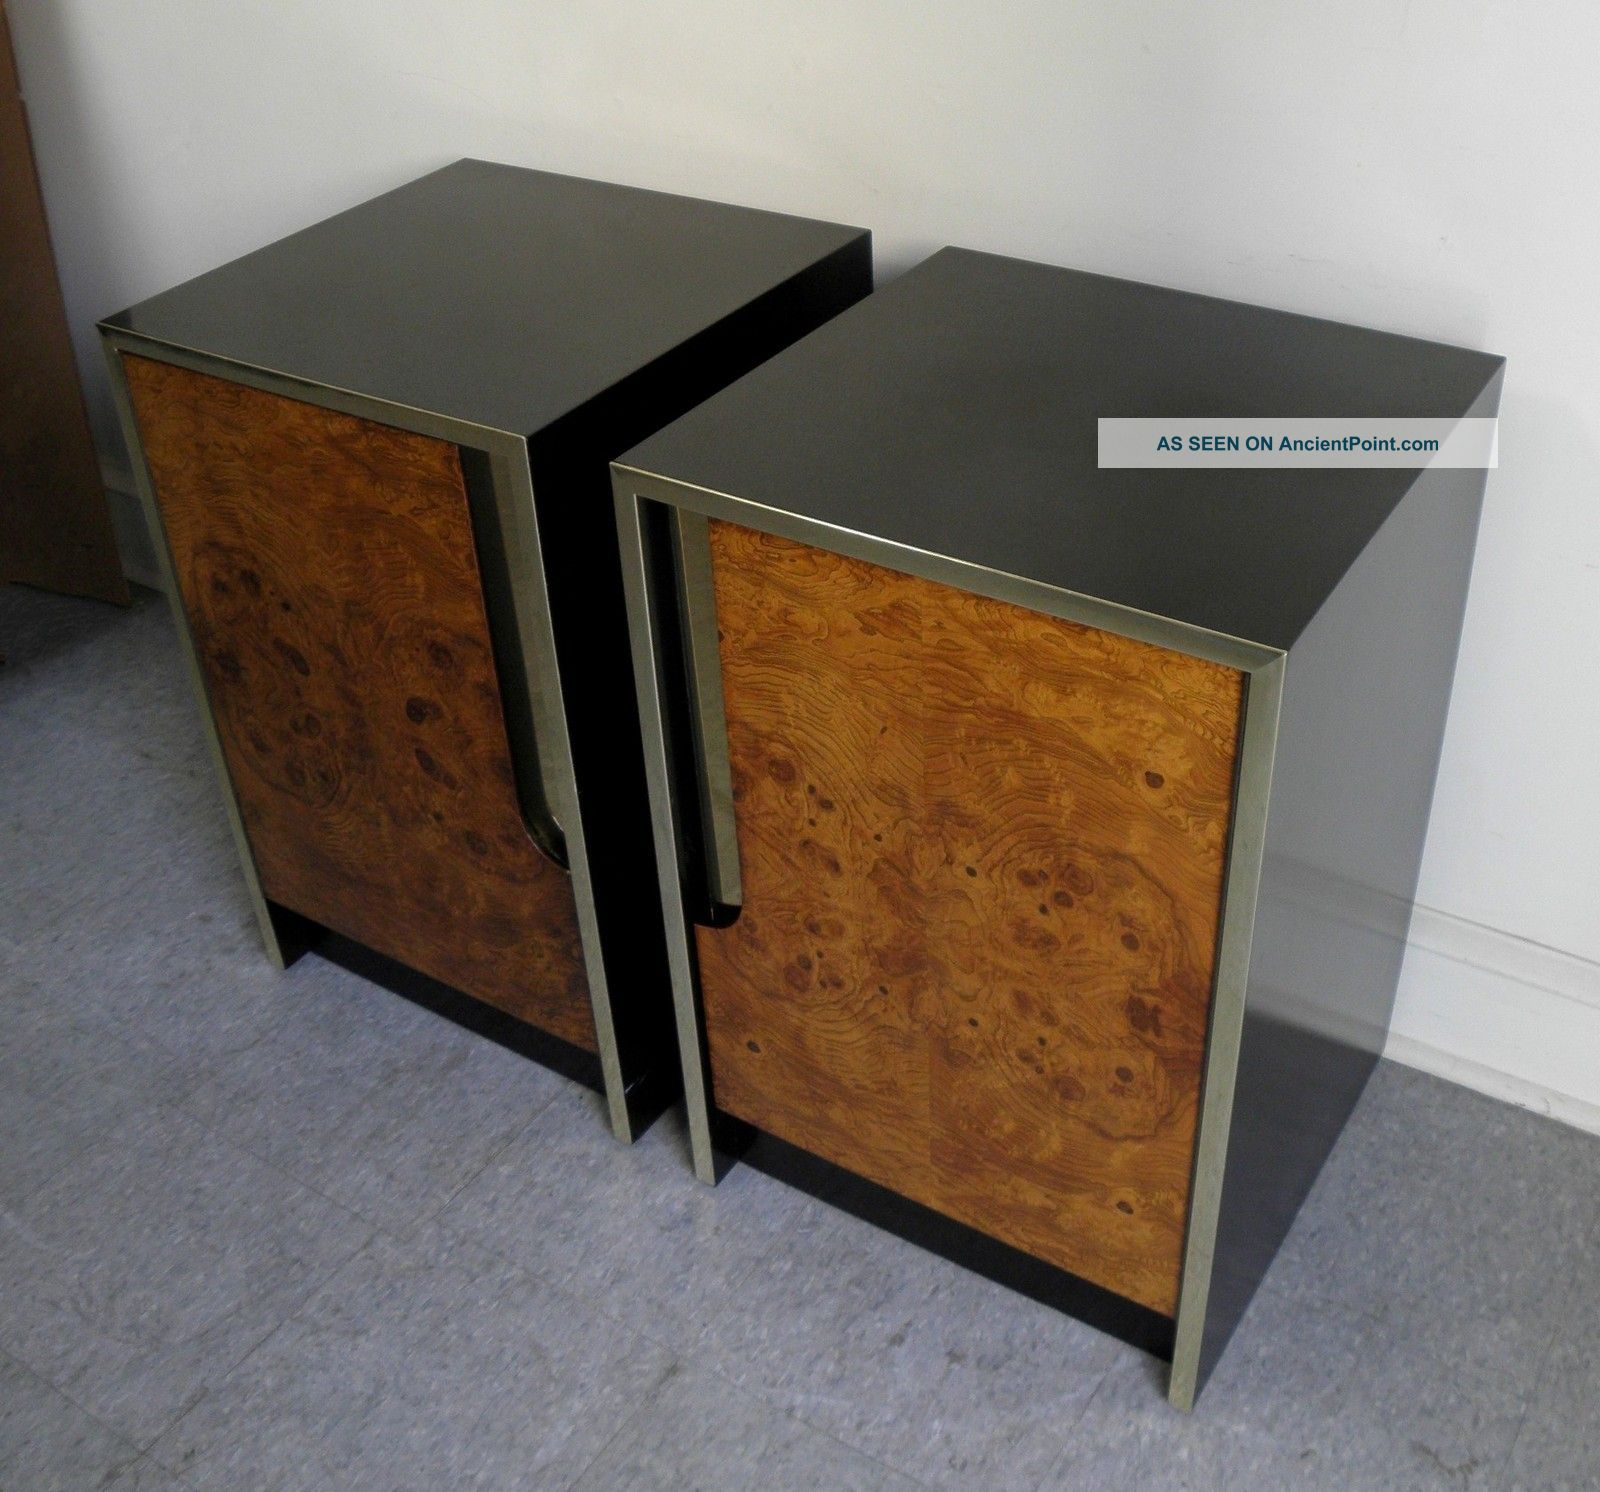 Very Impressive portraiture of Pair Mid Century Modern Burled Wood Brass Nightstands End Tables Milo  with #78451B color and 1600x1492 pixels